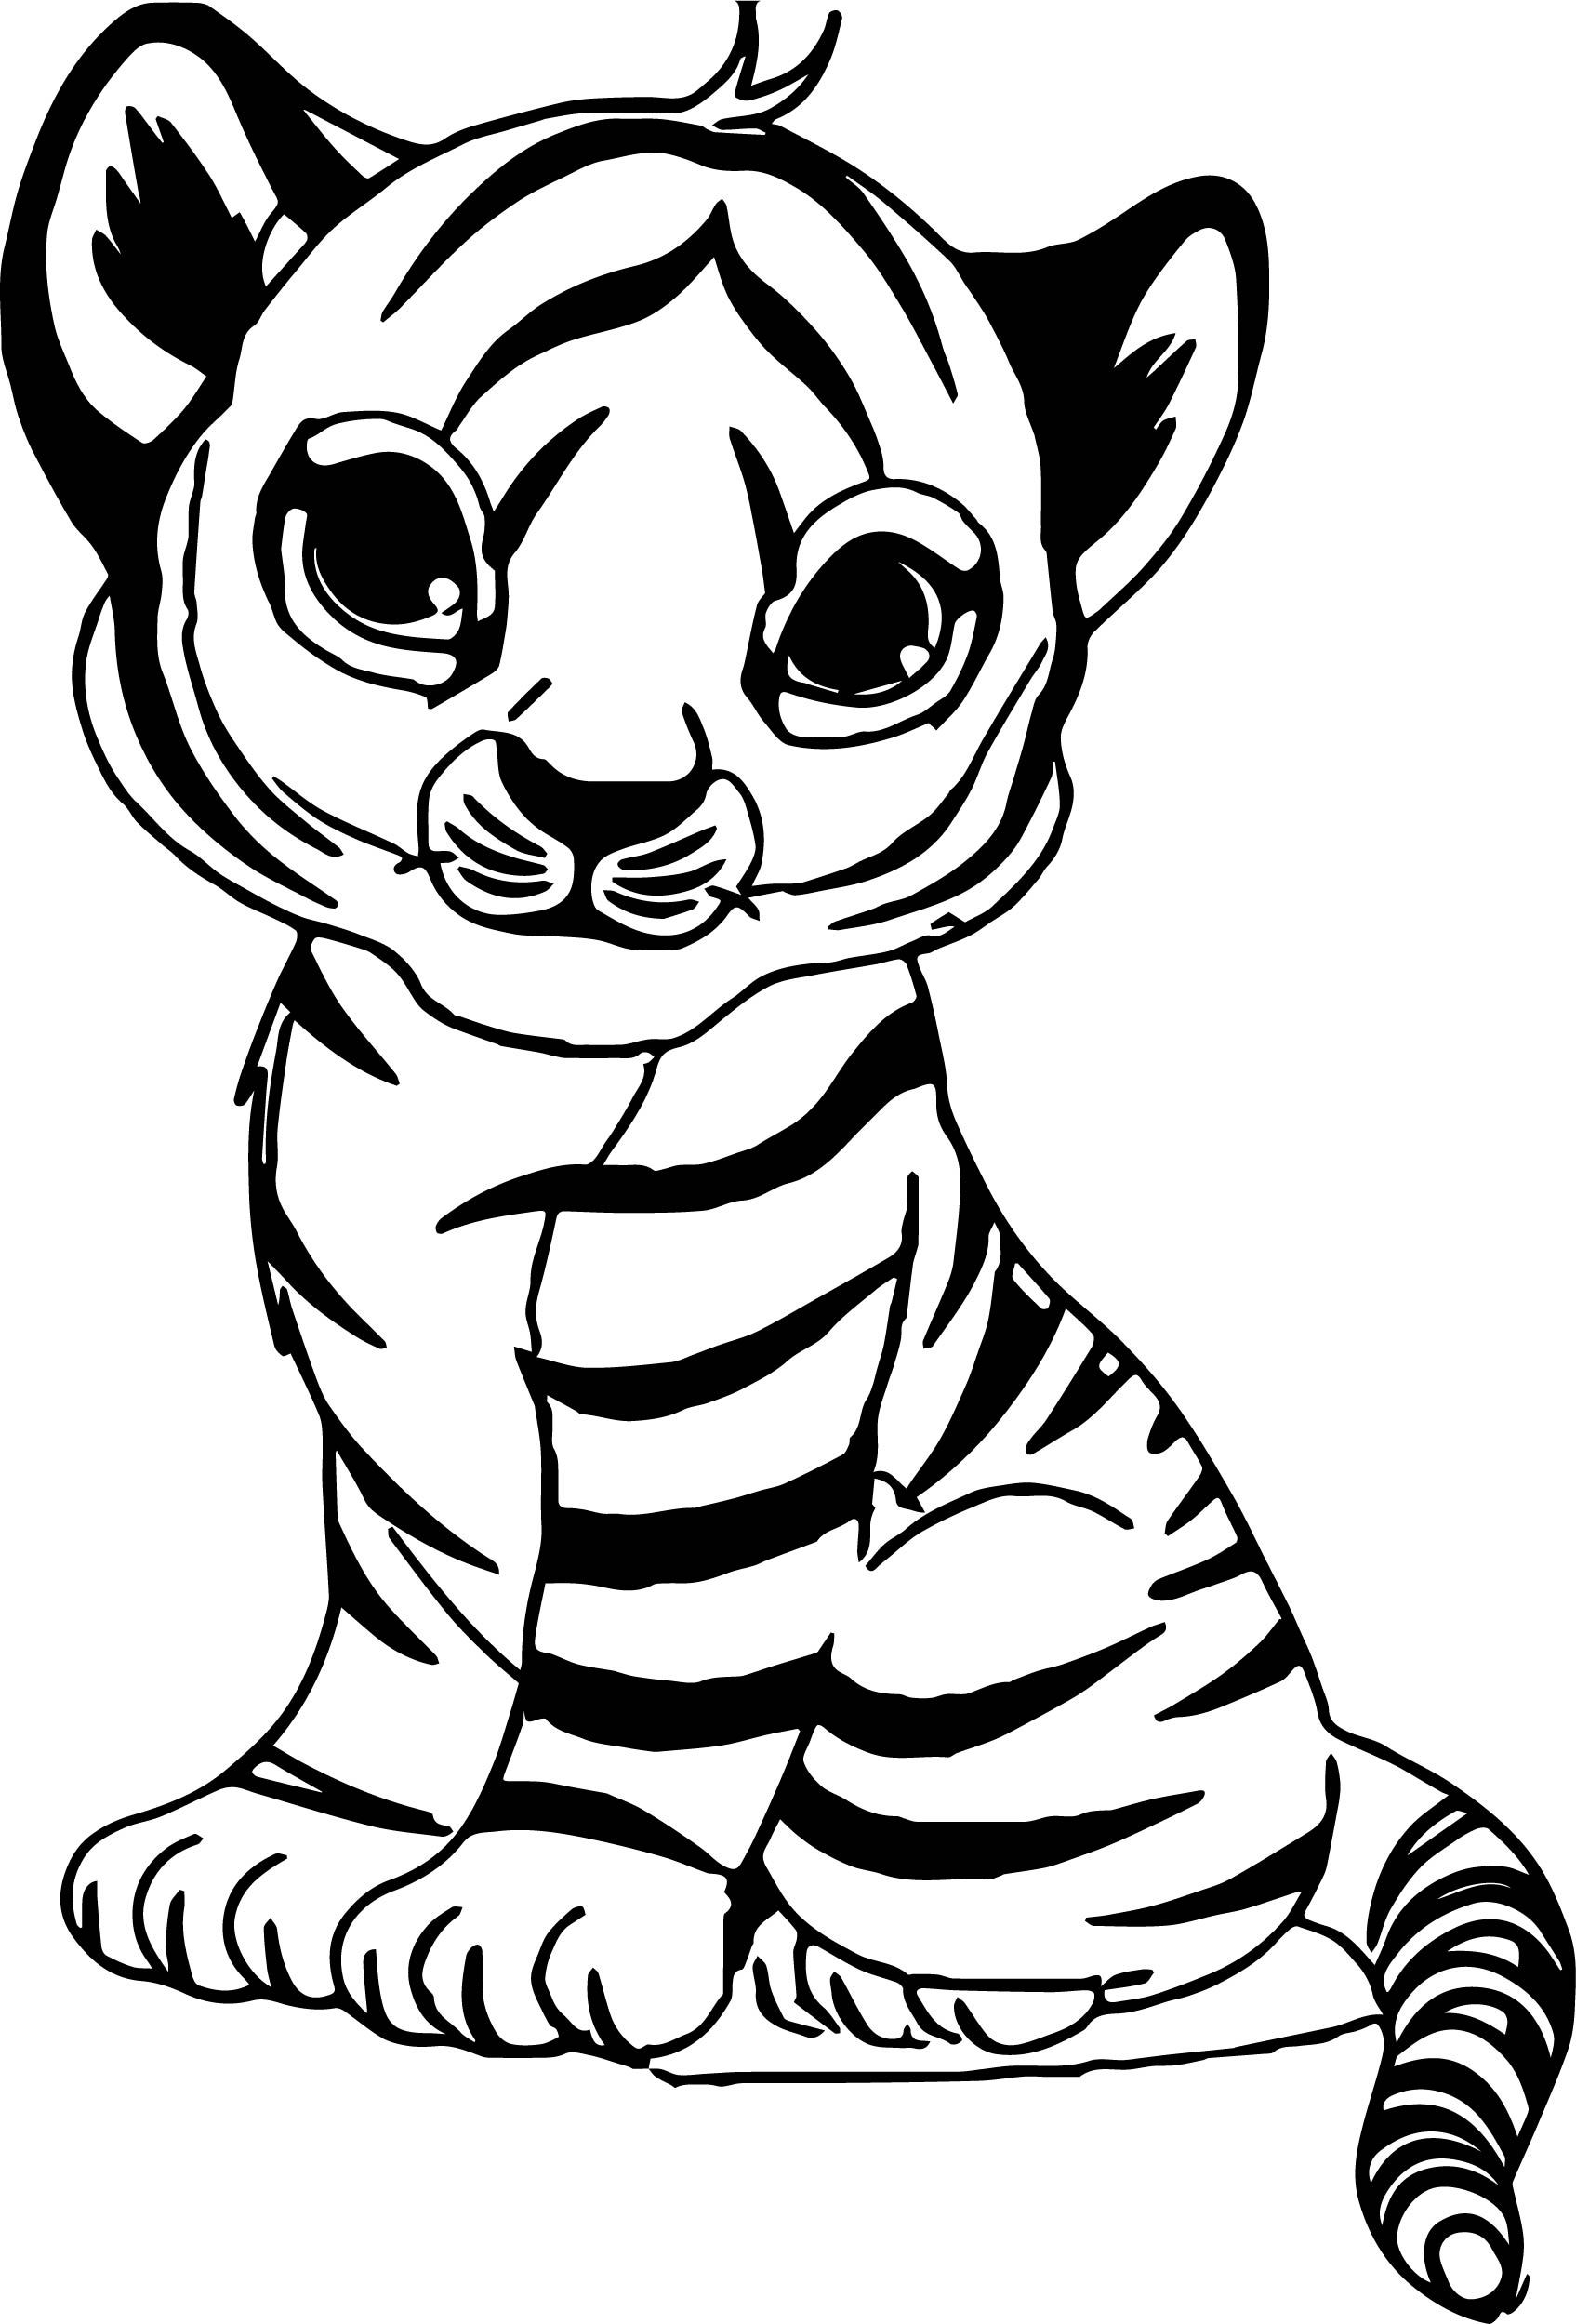 nice cute baby tiger coloring page zoo animals baby tigers cute tigers coloring sheets. Black Bedroom Furniture Sets. Home Design Ideas